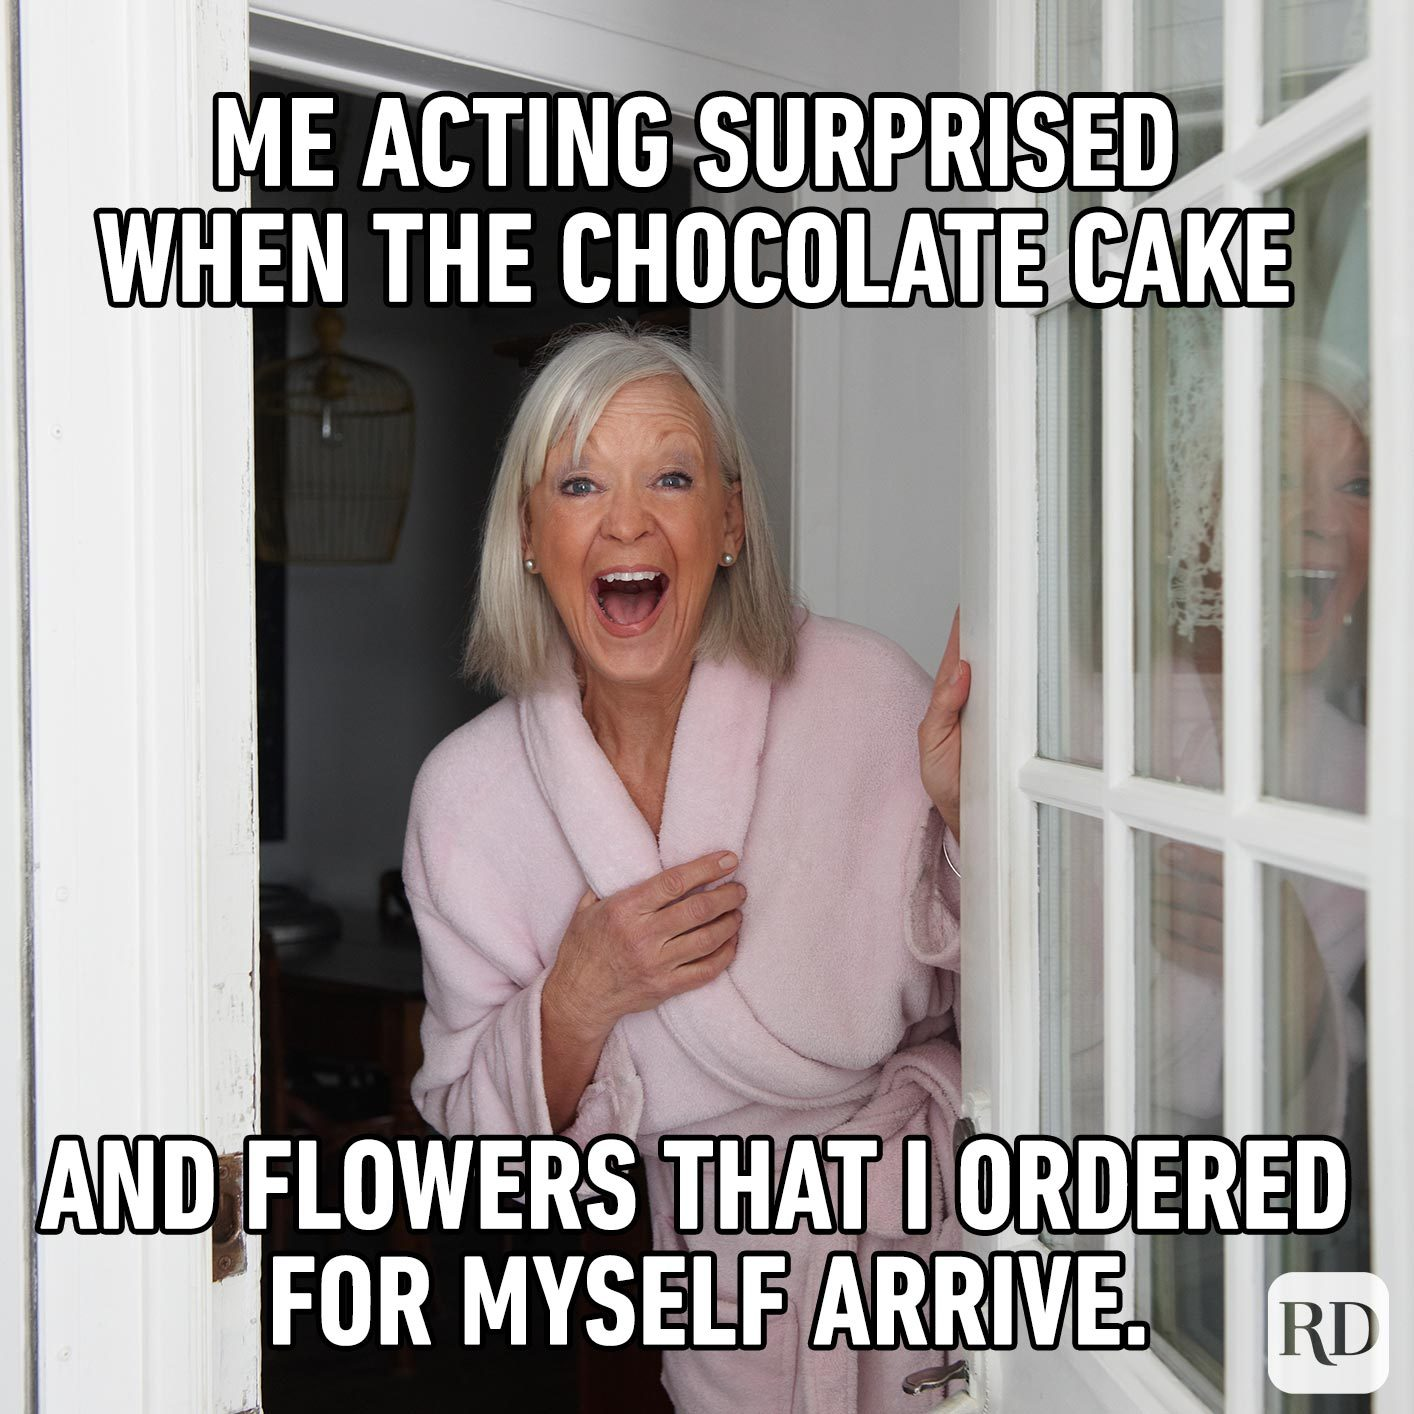 Woman opening the door and screaming. Meme text: Me acting surprised when the chocolate cake and flowers that I ordered for myself arrive.